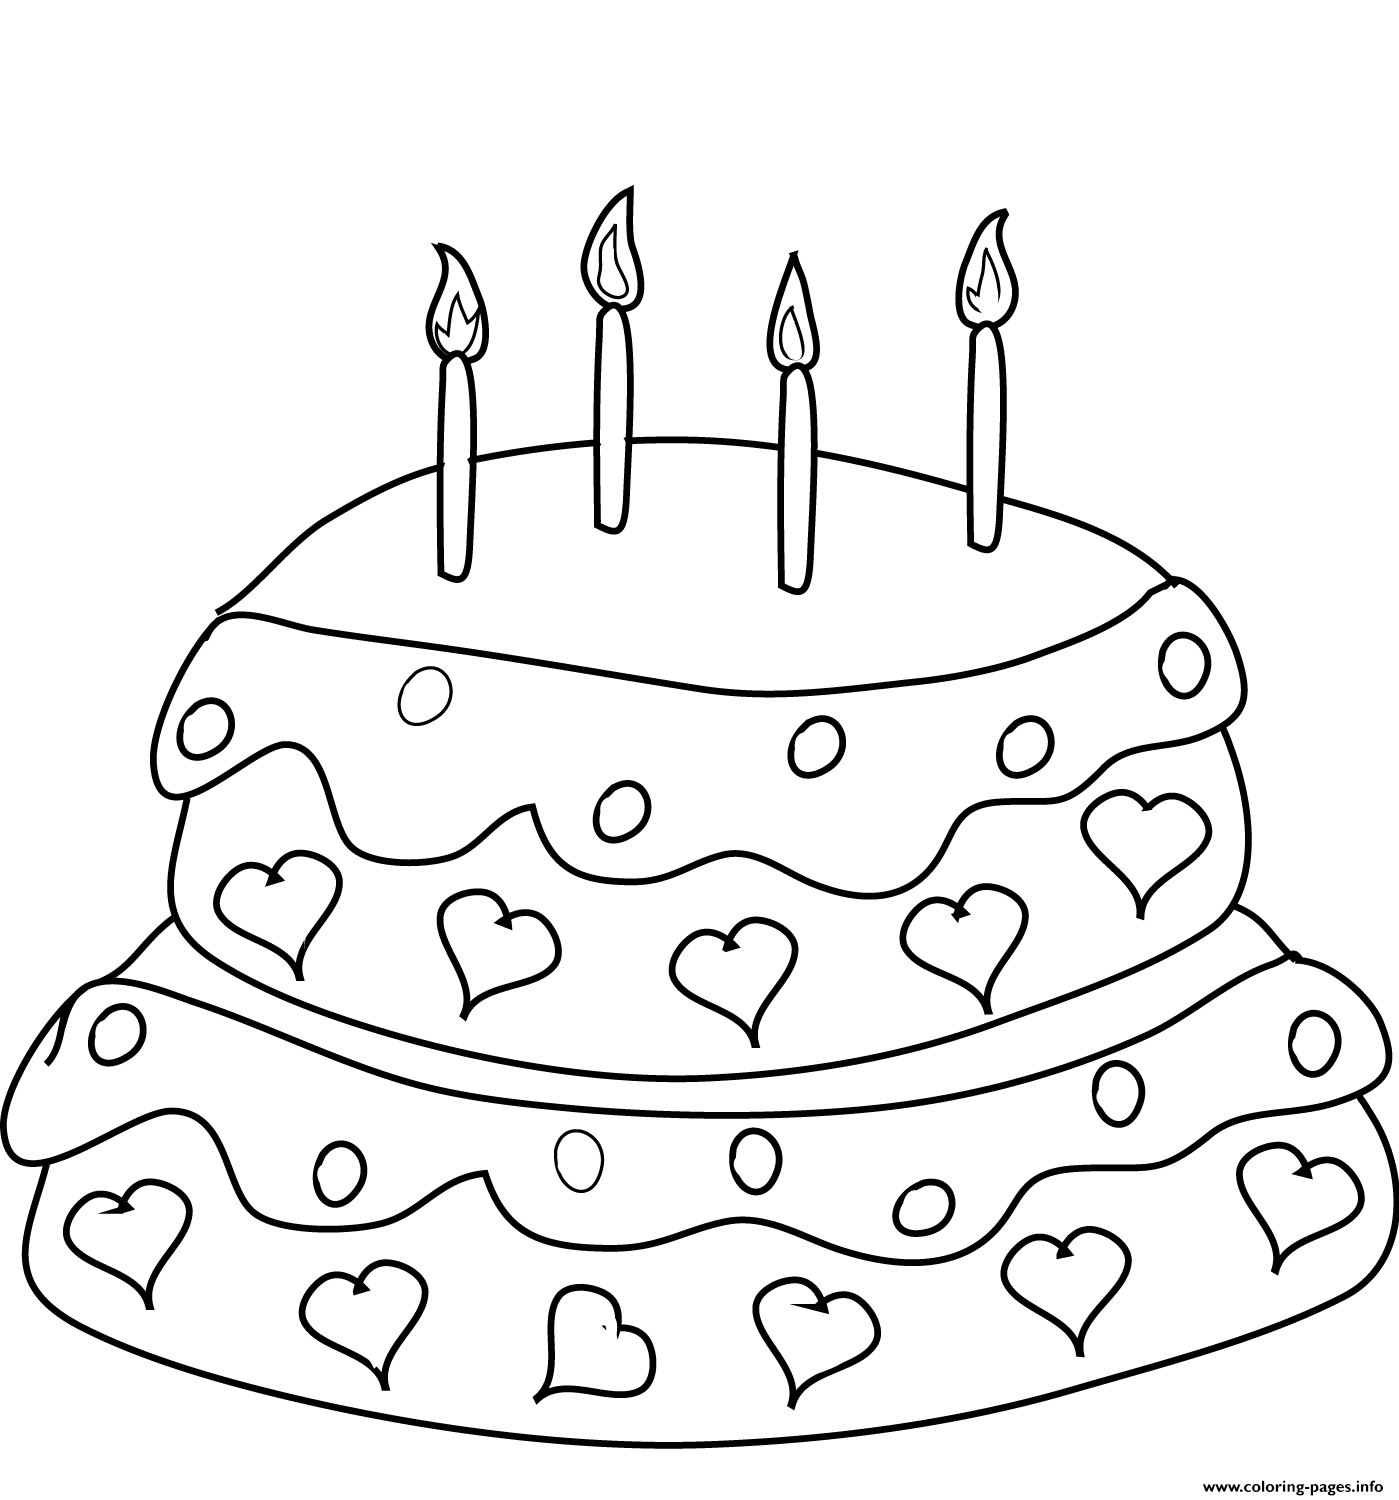 Superb Birthday Cake With Four Candles Coloring Pages Printable Funny Birthday Cards Online Barepcheapnameinfo